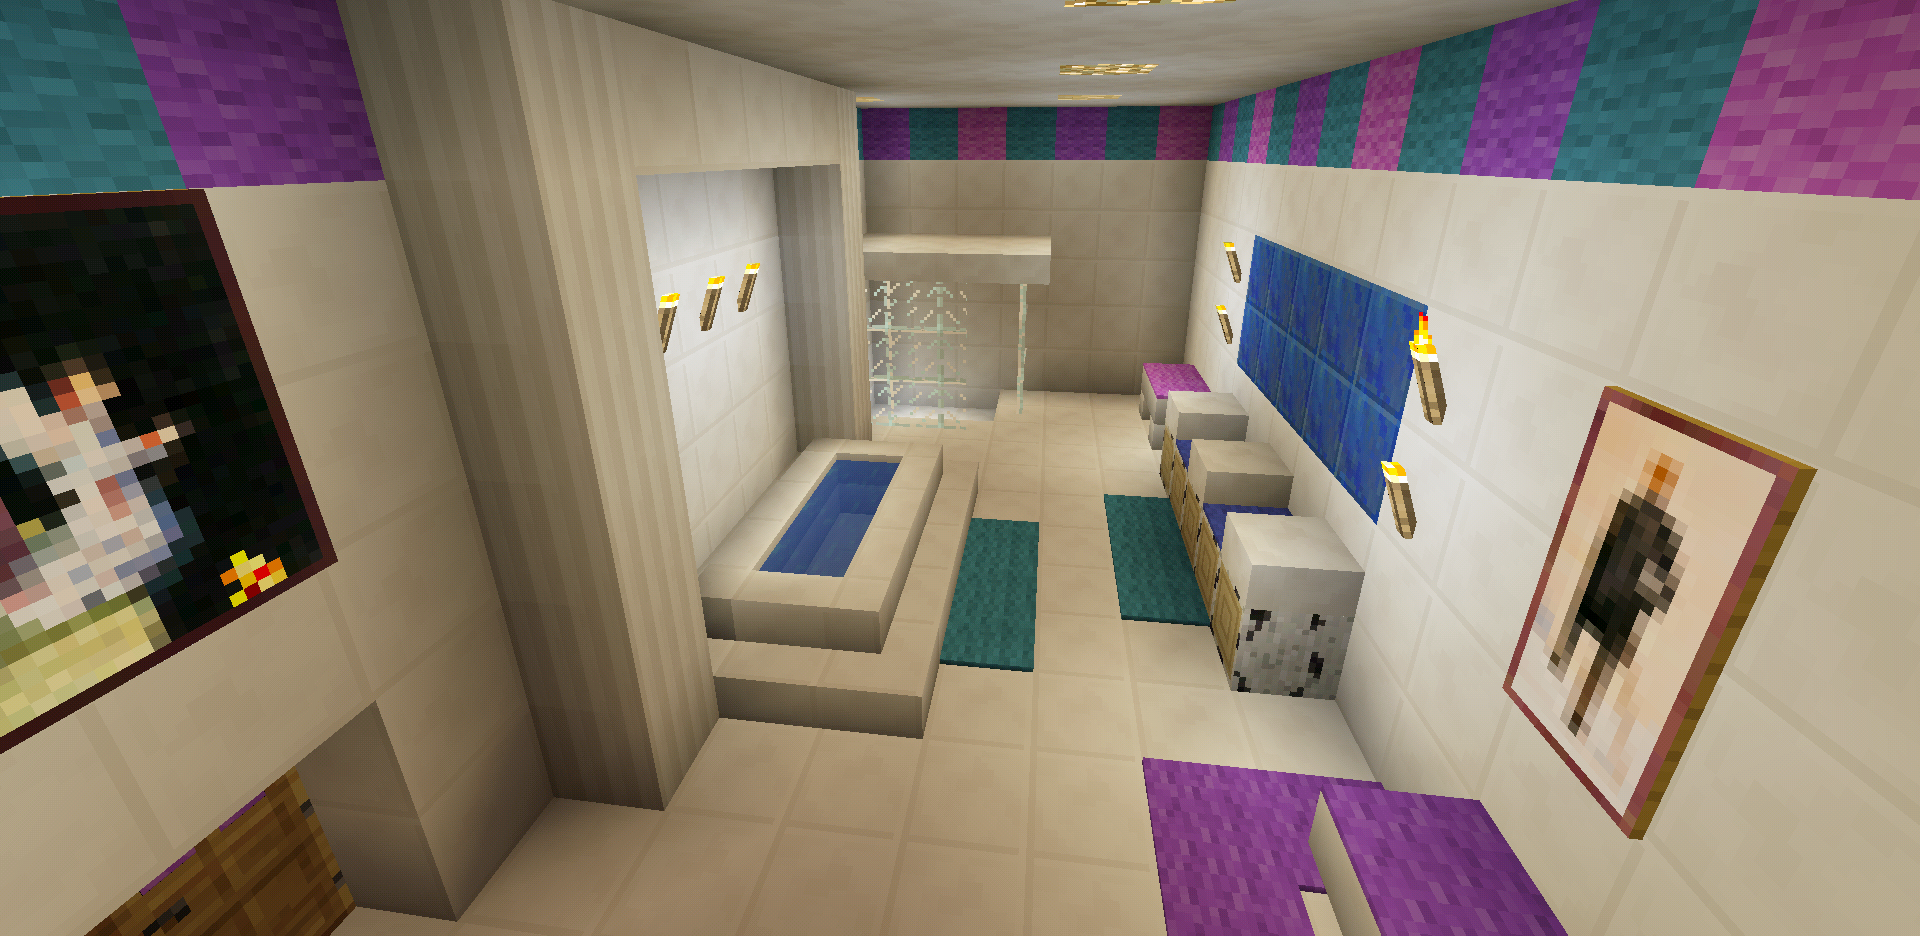 Bathroom Sinks Toilets And Tubs minecraft bathroom pink girl wallpaper wall design shower sink